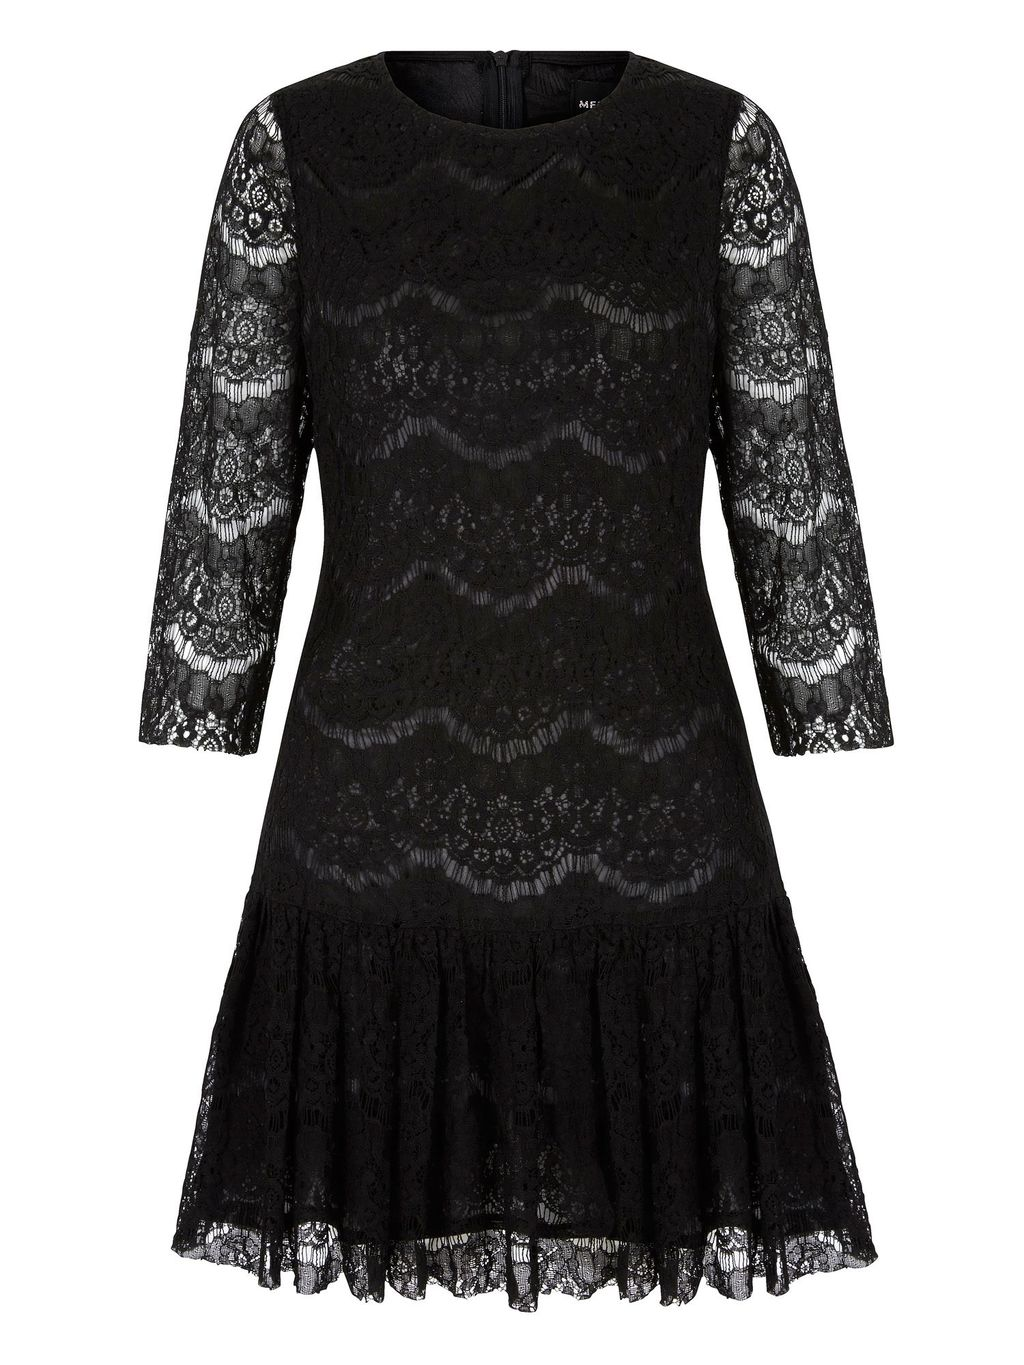 Lace Peplum Shift Dress, Black - style: shift; pattern: plain; predominant colour: black; occasions: evening; length: just above the knee; fit: body skimming; fibres: polyester/polyamide - 100%; neckline: crew; sleeve length: long sleeve; sleeve style: standard; texture group: lace; pattern type: fabric; pattern size: standard; season: a/w 2015; wardrobe: event